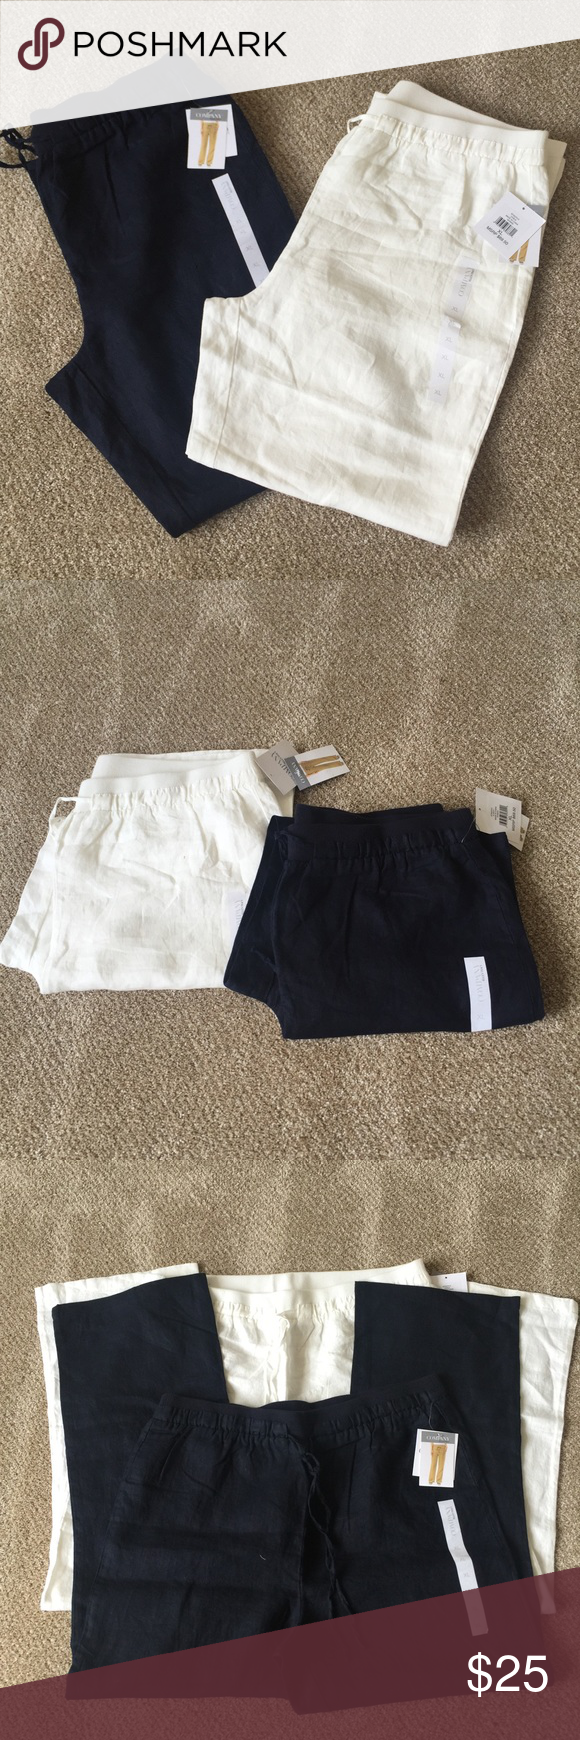 """Bundled 2 pair wide Leg Linen Ellen Tracy Pants. NWT """"ELLEN TRACY"""" White and Navy Blue. Drawstring Waist Casual Linen Pants, MISSES EXTRA LARGE,100% Linen Body, 95% Cotton/5% Spandex Ribbed Stretch ... Bundled for great price. Ellen Tracy Pants Wide Leg"""